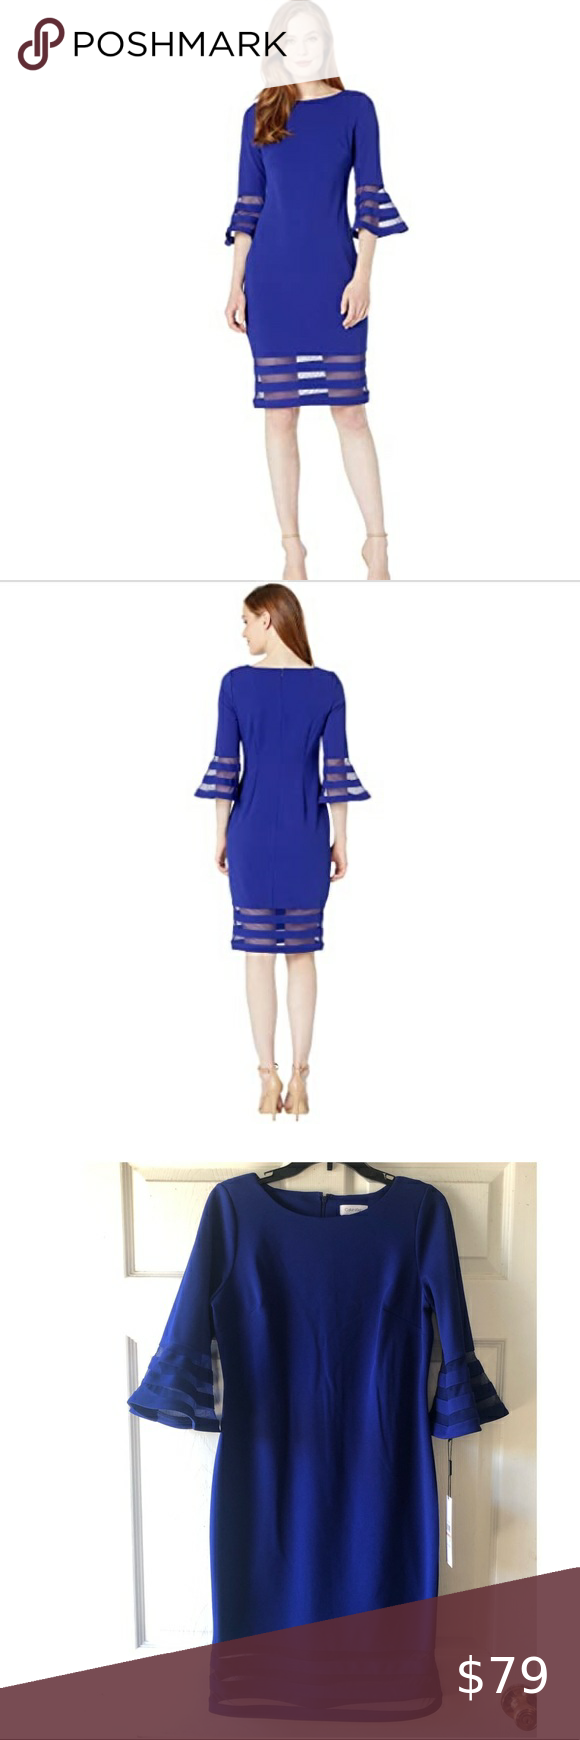 Nwt Calvin Klein Illusion Blue Bell Sleeve Dress In 2020 Blue Bell Sleeve Dress Bell Sleeve Dress Dresses With Sleeves